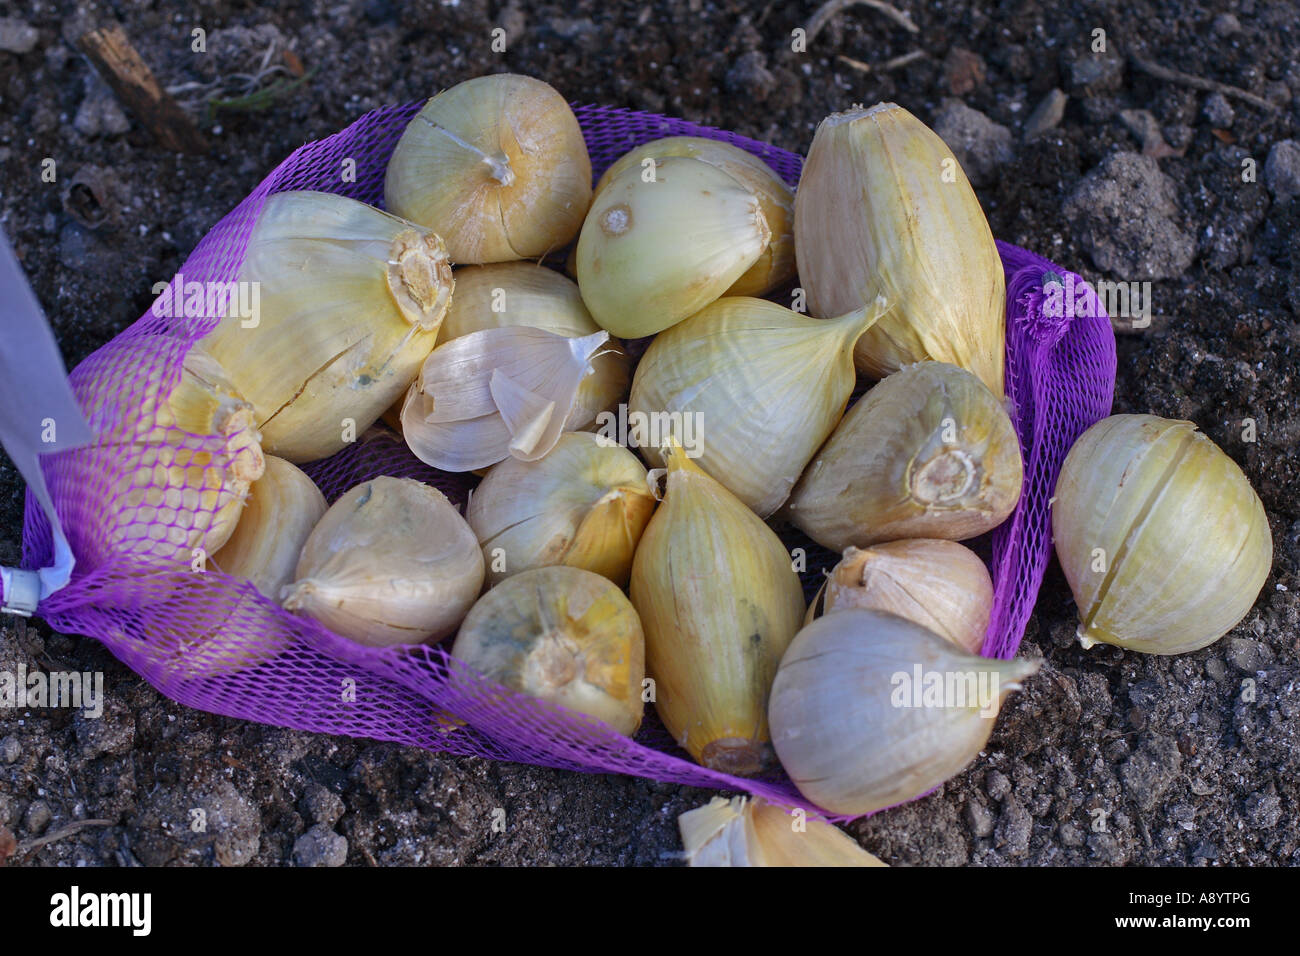 ELEPHANT GARLIC CLOSE UP OF BULBS FOR PLANTING - Stock Image